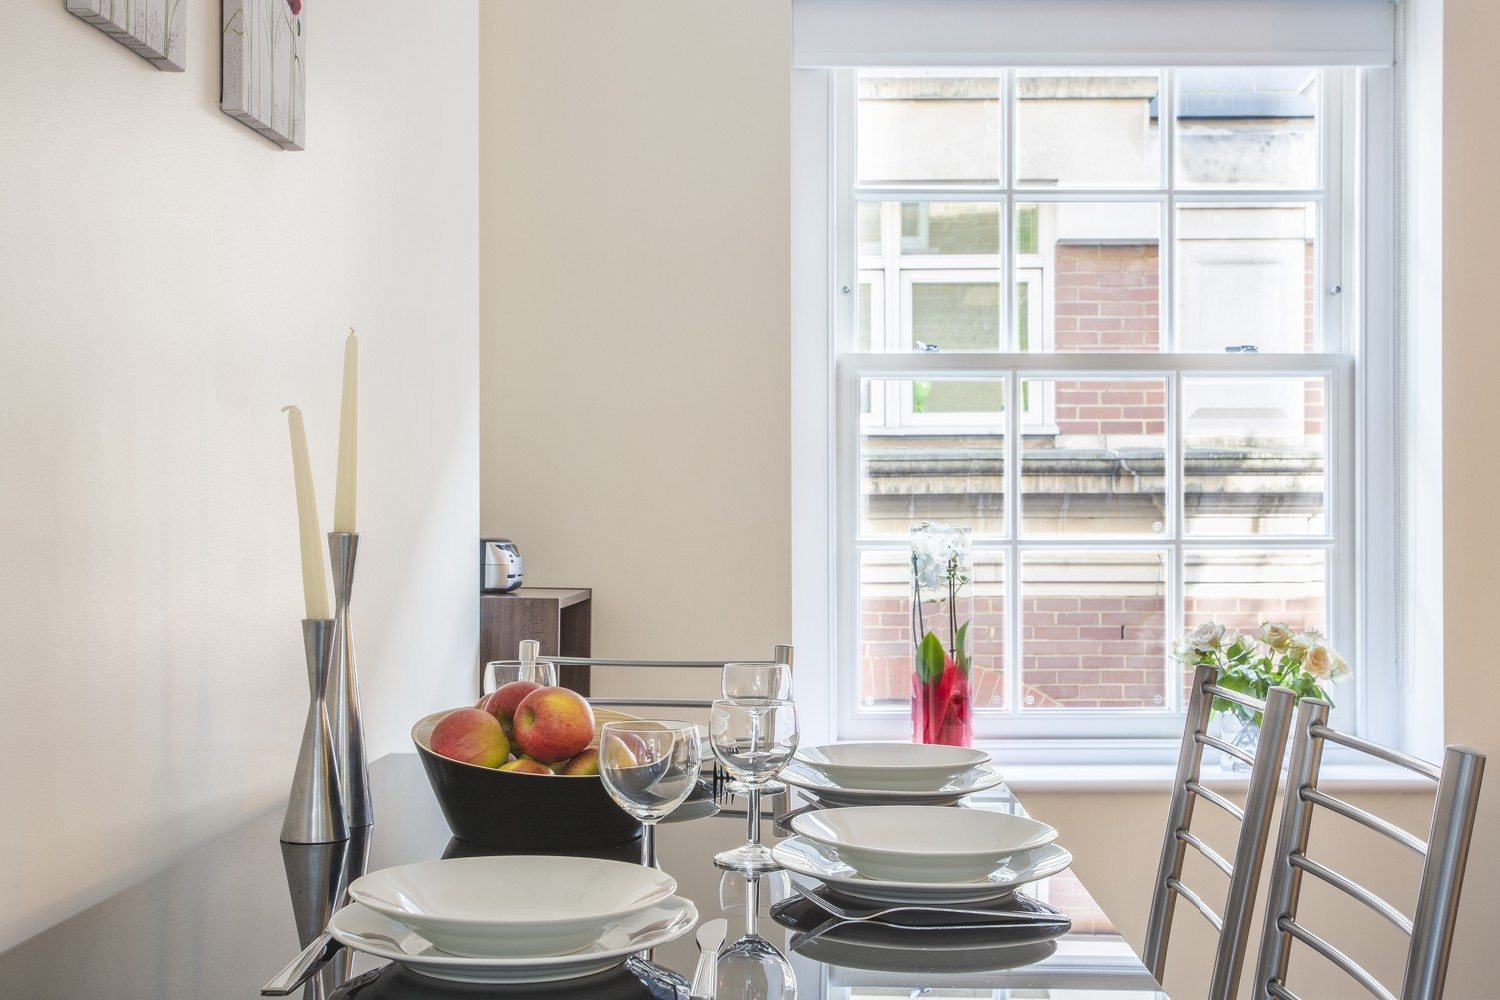 Liverpool Street Serviced Accommodation Artillery Lane Apartments Bright Dining Area